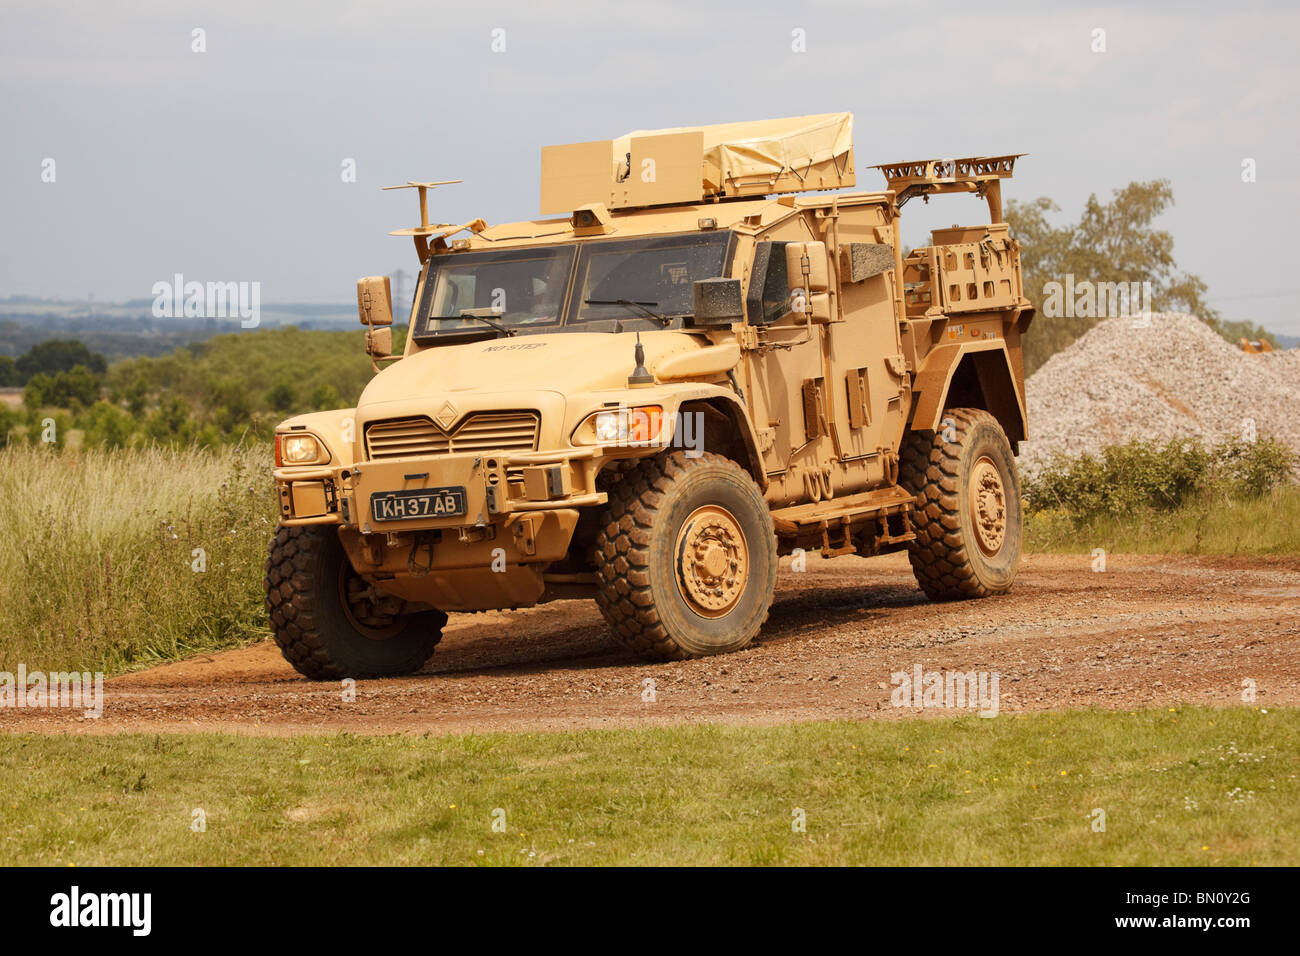 A Navistar Husky protected Tactical Support Vehicle (TSV) of the British Army. - Stock Image